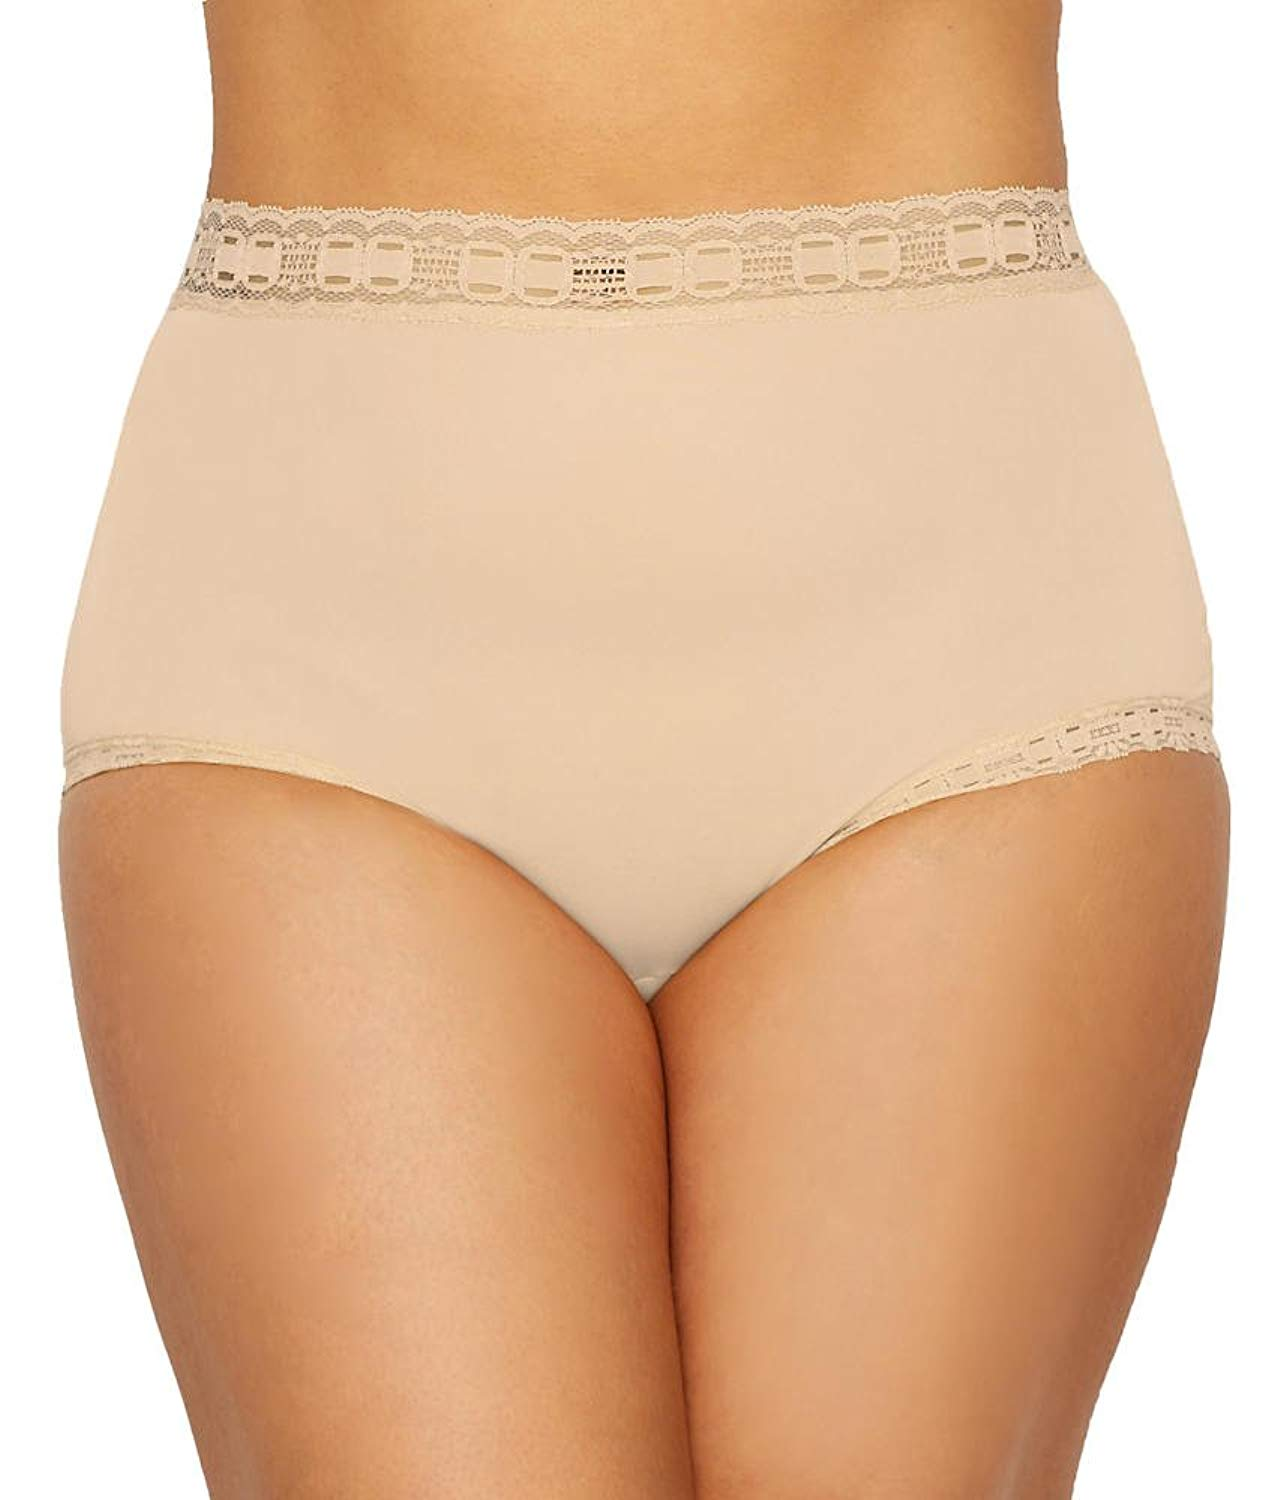 d49925944ca Buy Olga Womens Secret Hug Fashion Scoops Hipster Panty in Cheap ...